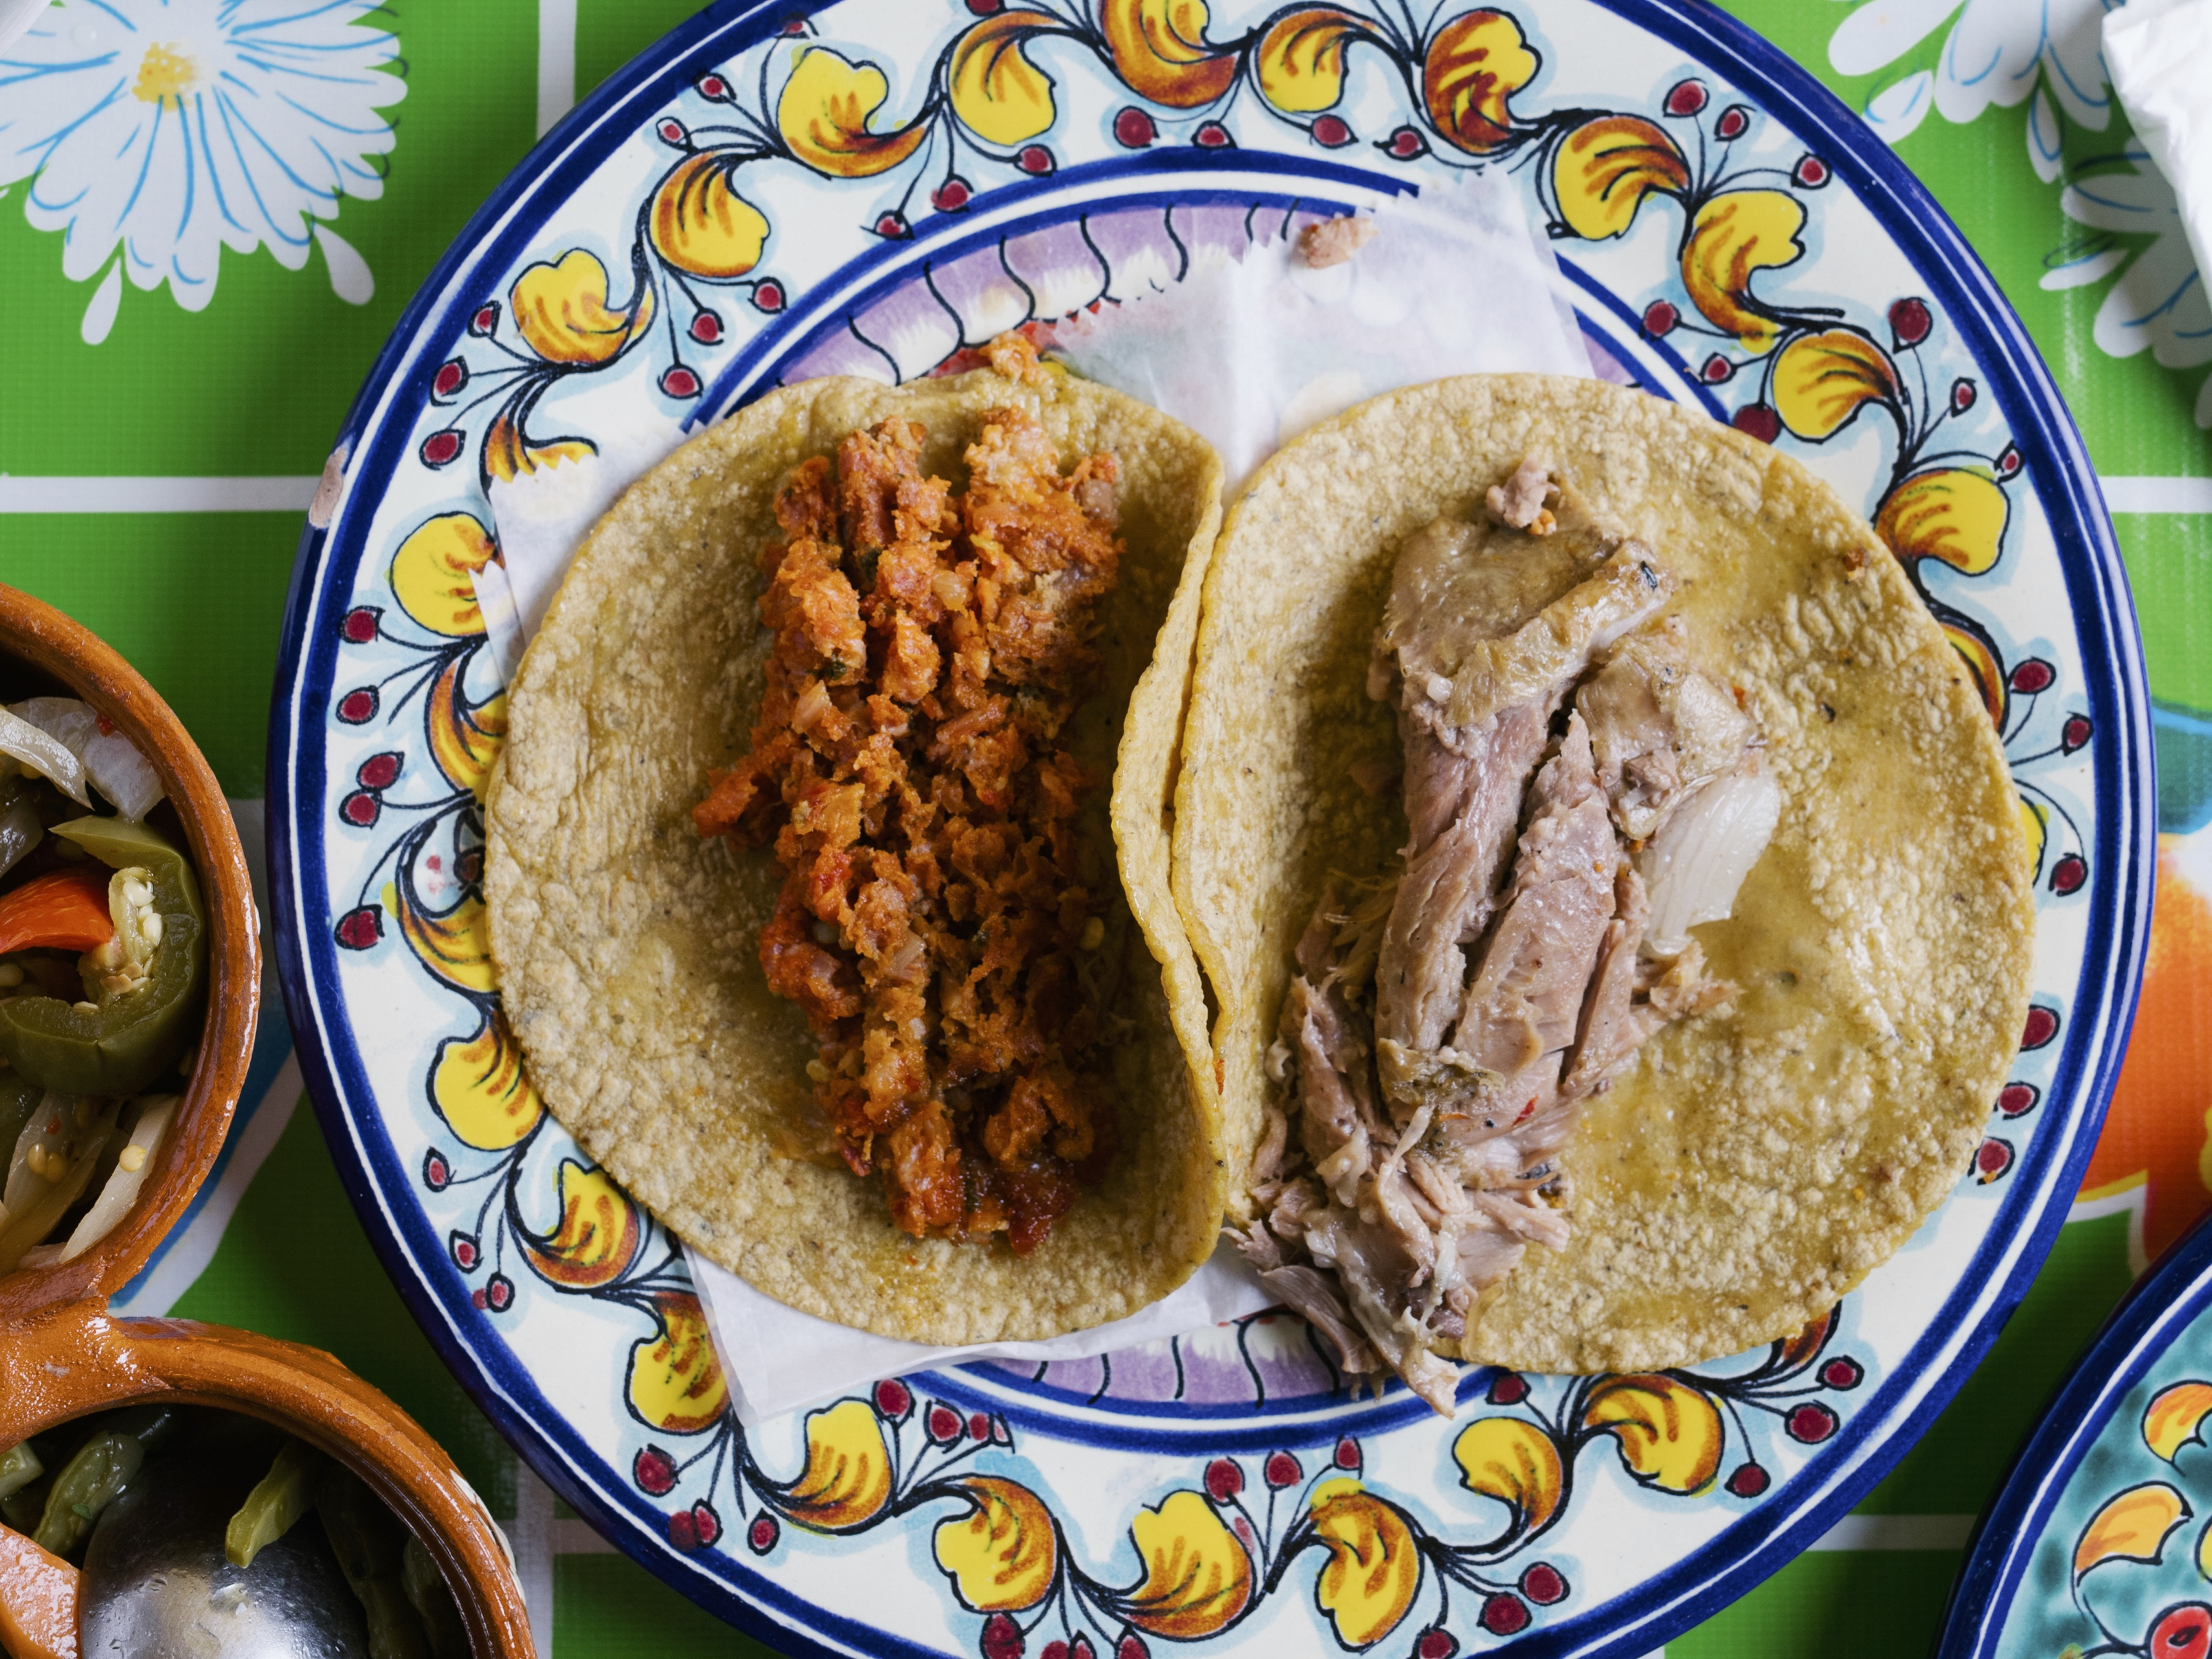 An overhead photograph of two corn tortillas, one filled with crumbly orange meat and another with brown- and pink-colored meat slices.